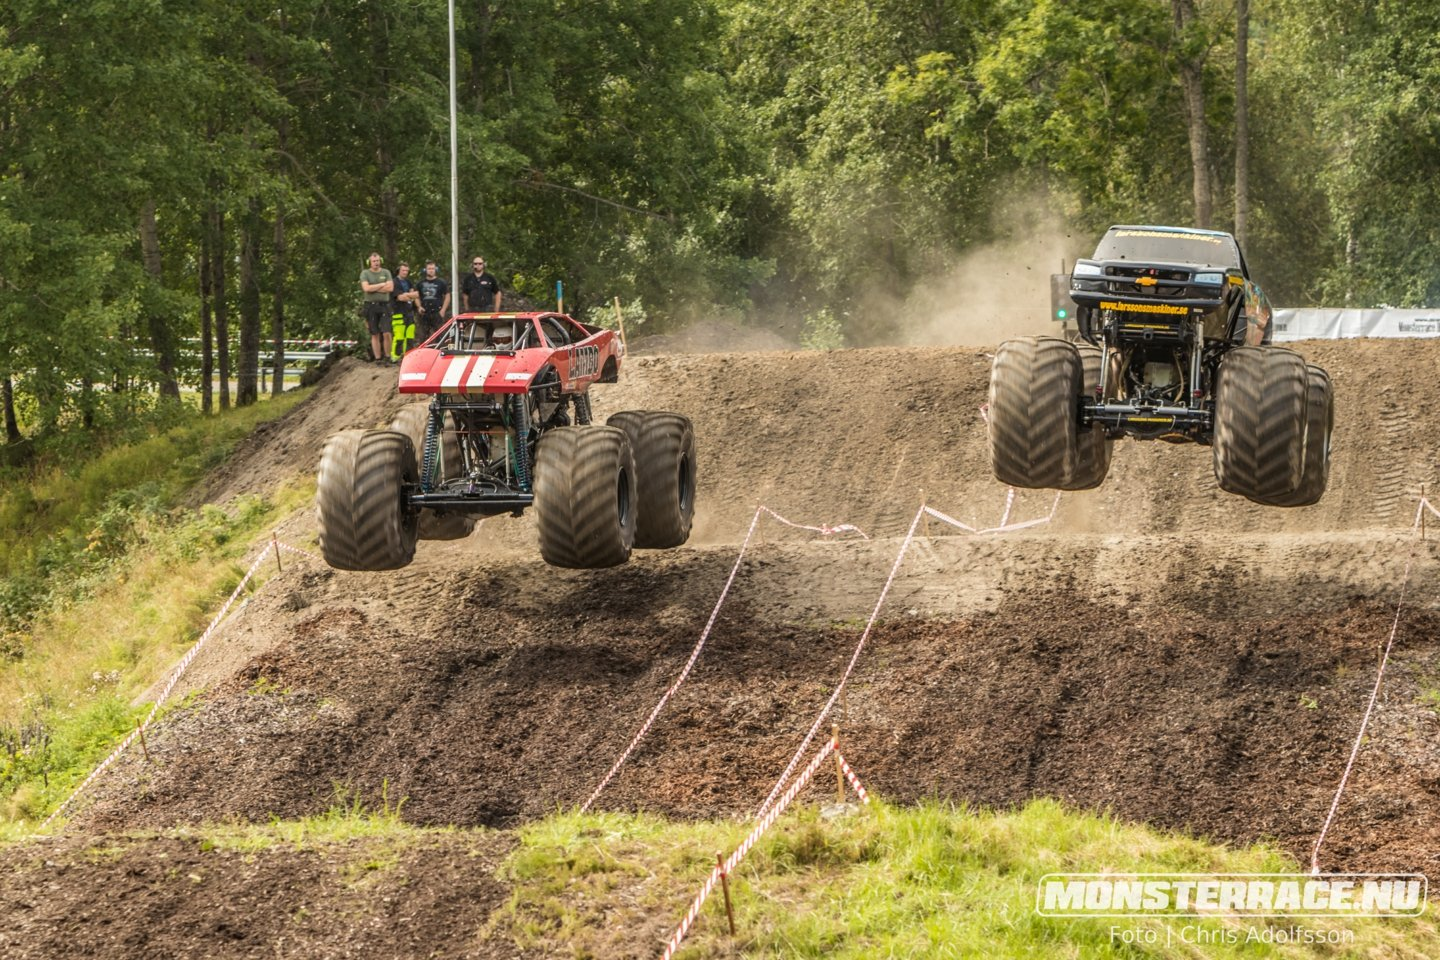 Monsterrace Ed dag 1 (131)